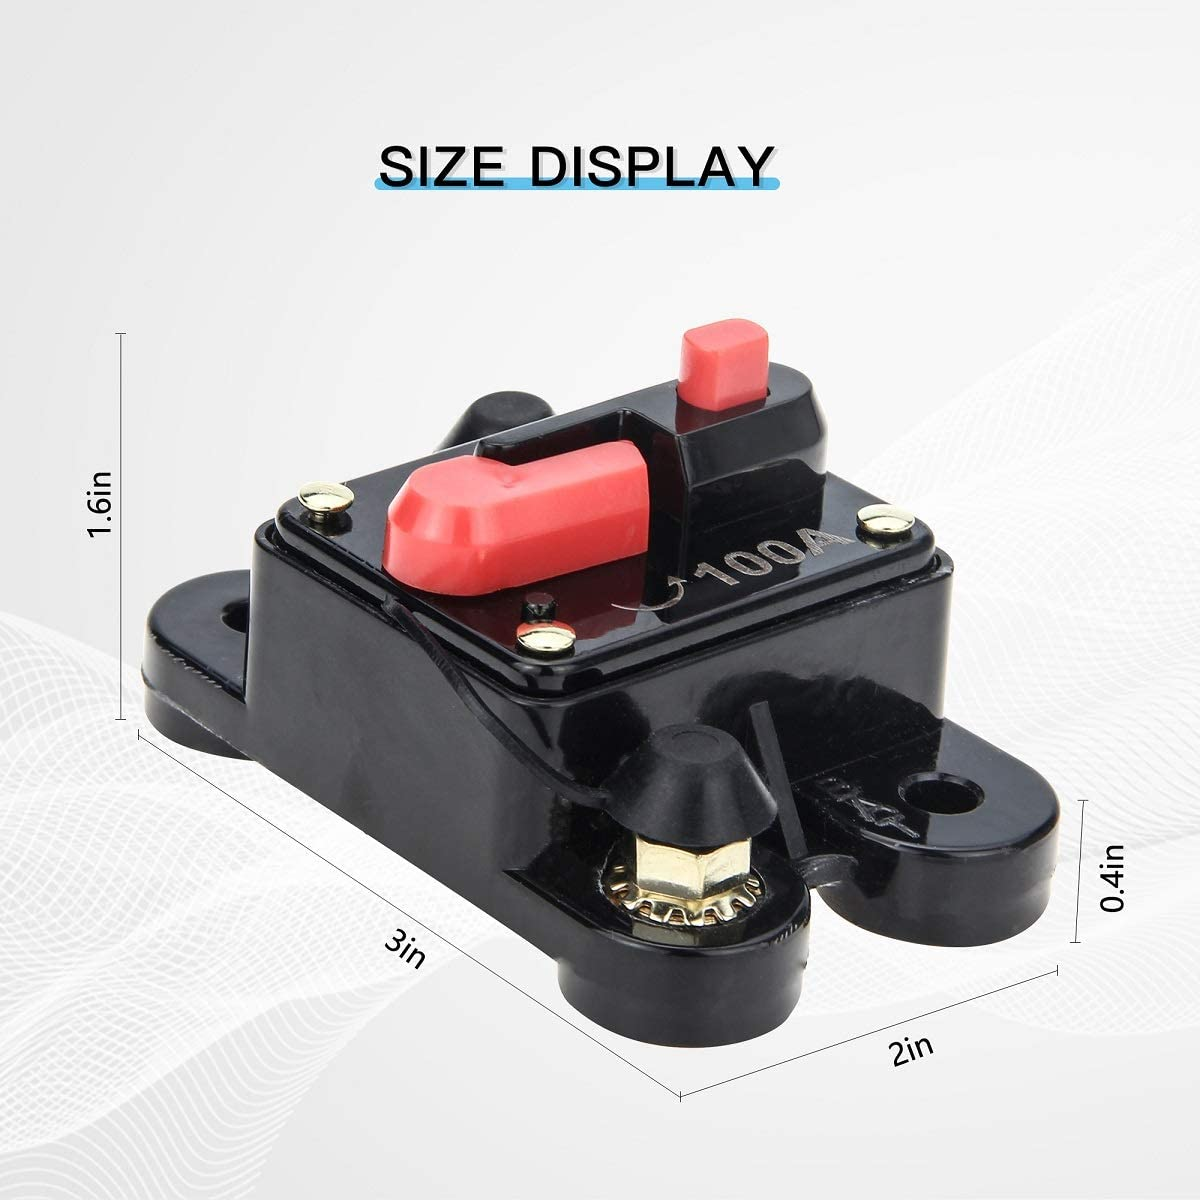 Ancable Waterproof Audio Inline Fuse Holder with Manual Reset 12V-48V DC for Car Audio Home Solar System 100 Amp Circuit Breaker Marine Boat Trolling Motor Truck